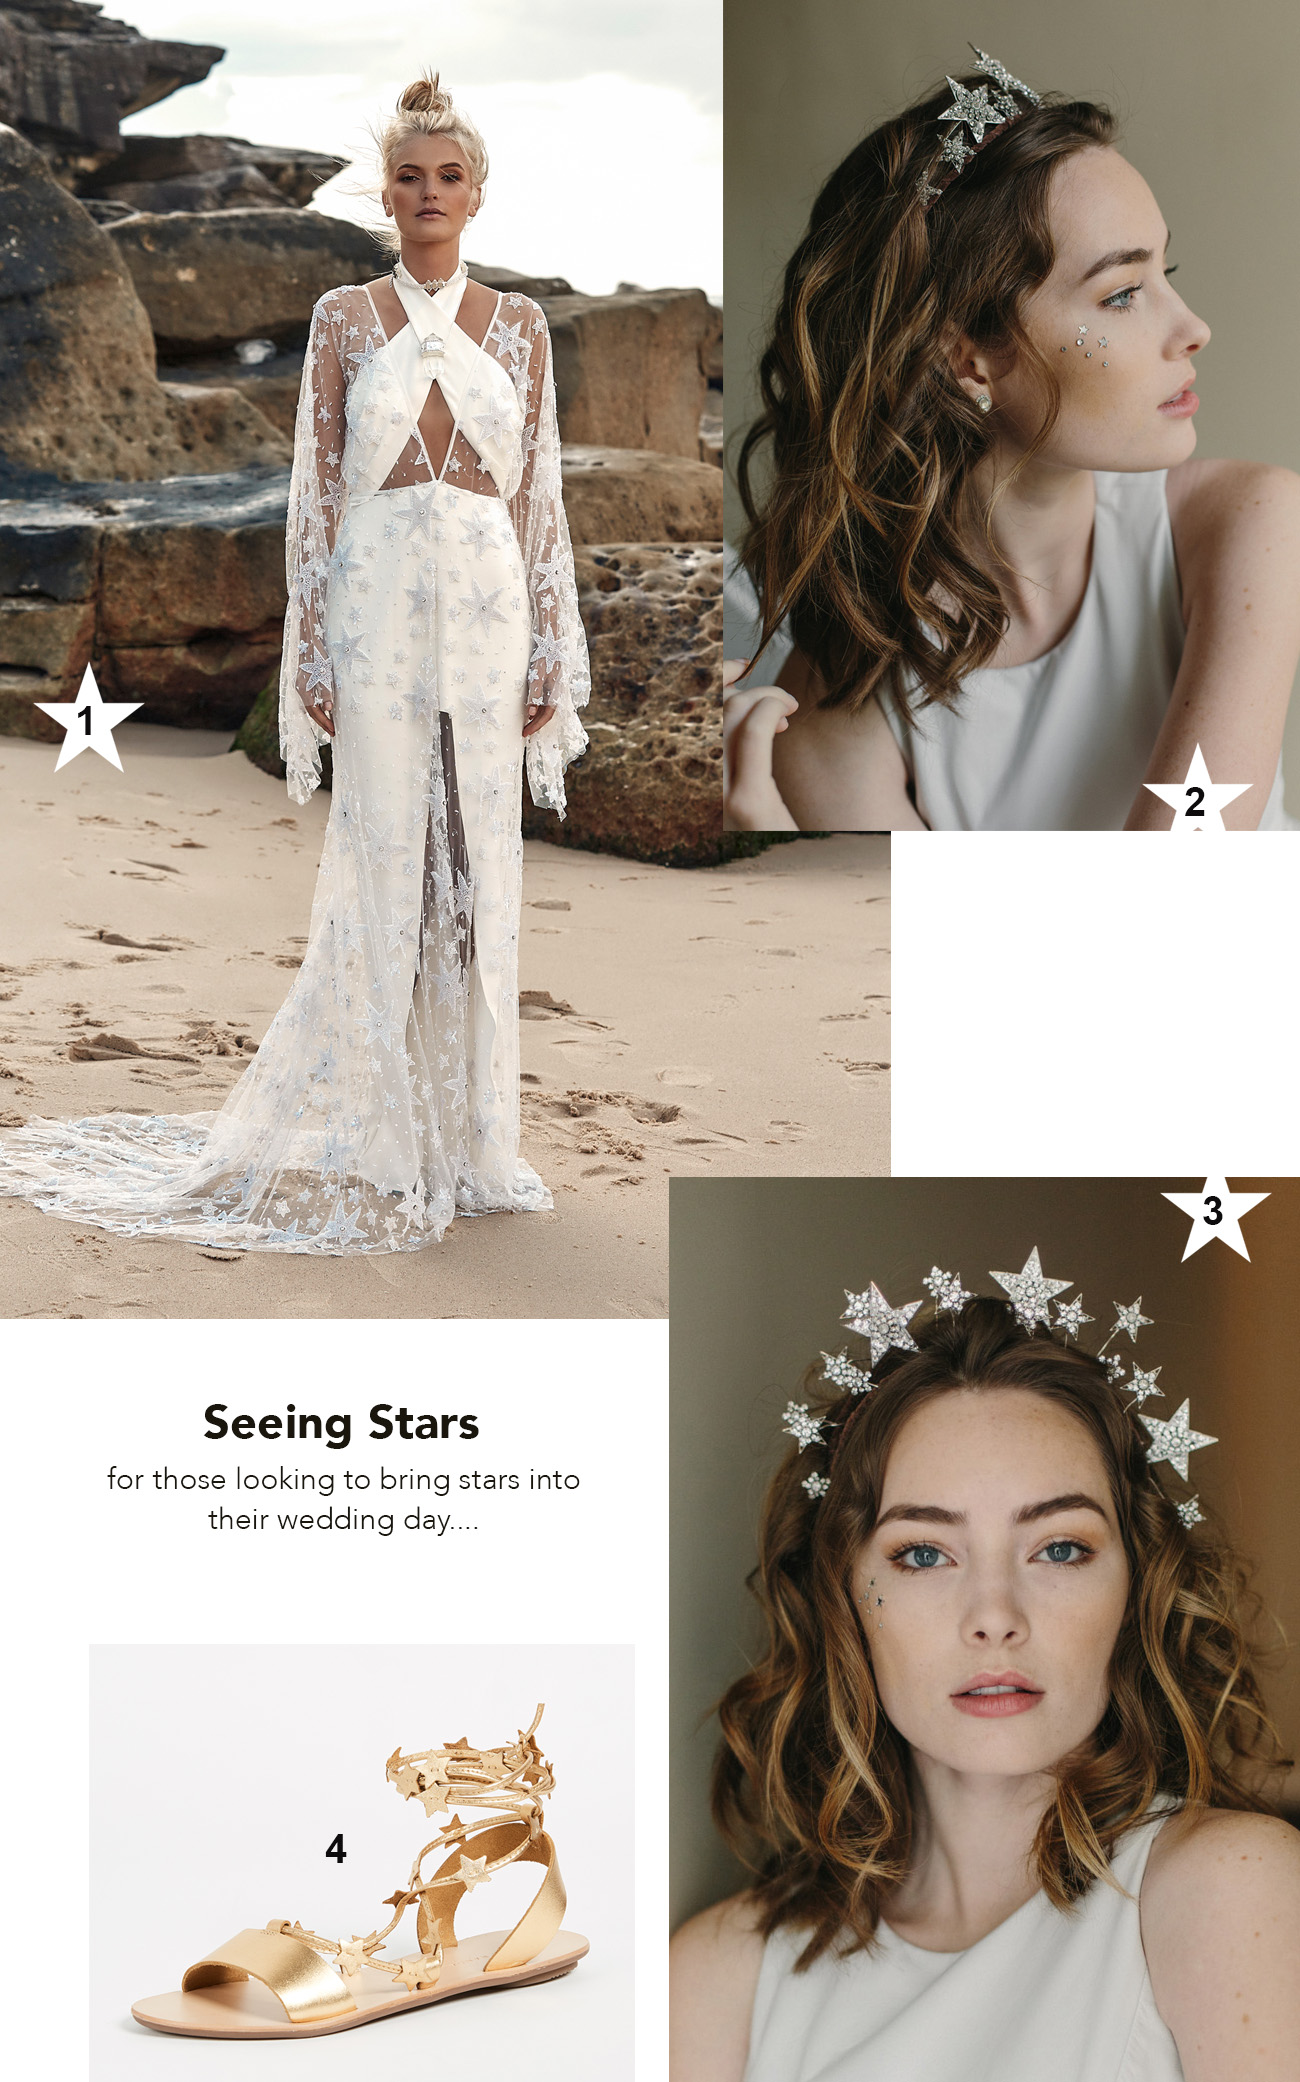 Trending Now: Seeing Stars! - Green Wedding Shoes